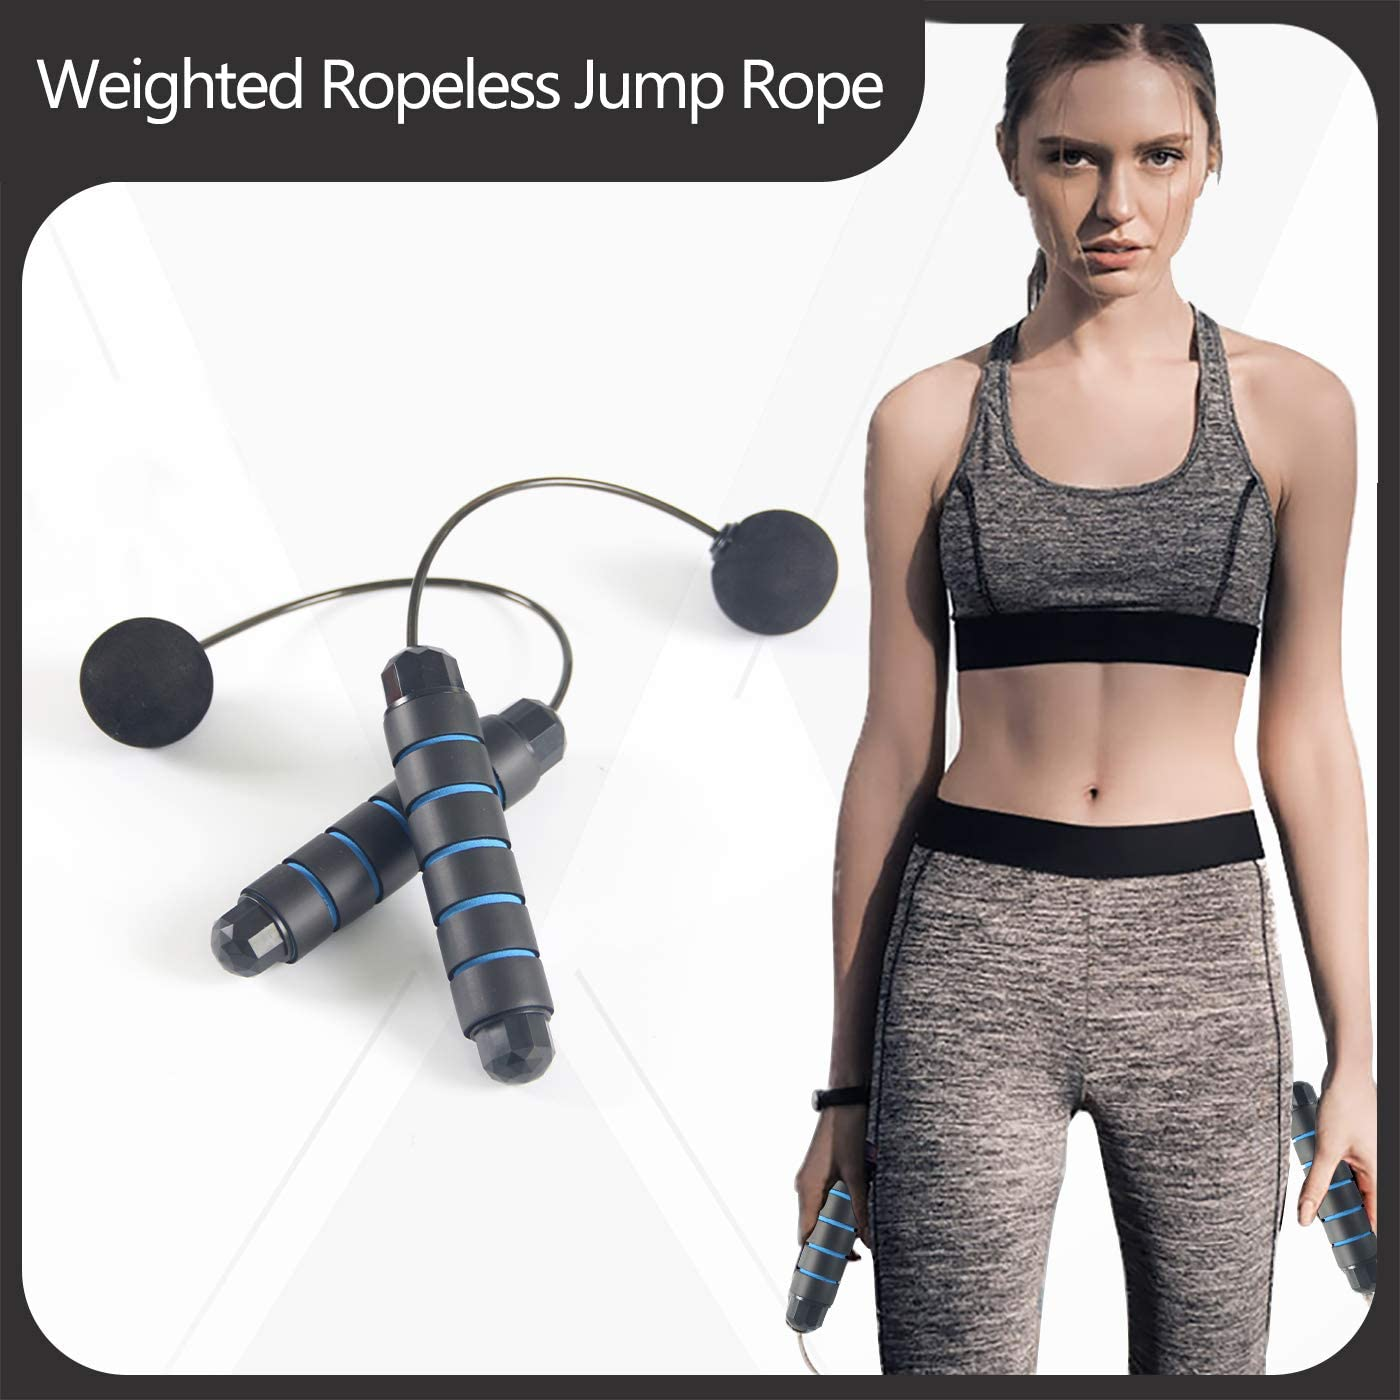 Outdoor Kids Women GoMi Weighted Cordless Jump Rope Suitable for Indoor Training Ropeless Bod Rope for Fitness with Length Adjuster Men Jump Rope Skipping Rope with Anti-Slip Memory Sponge Handles